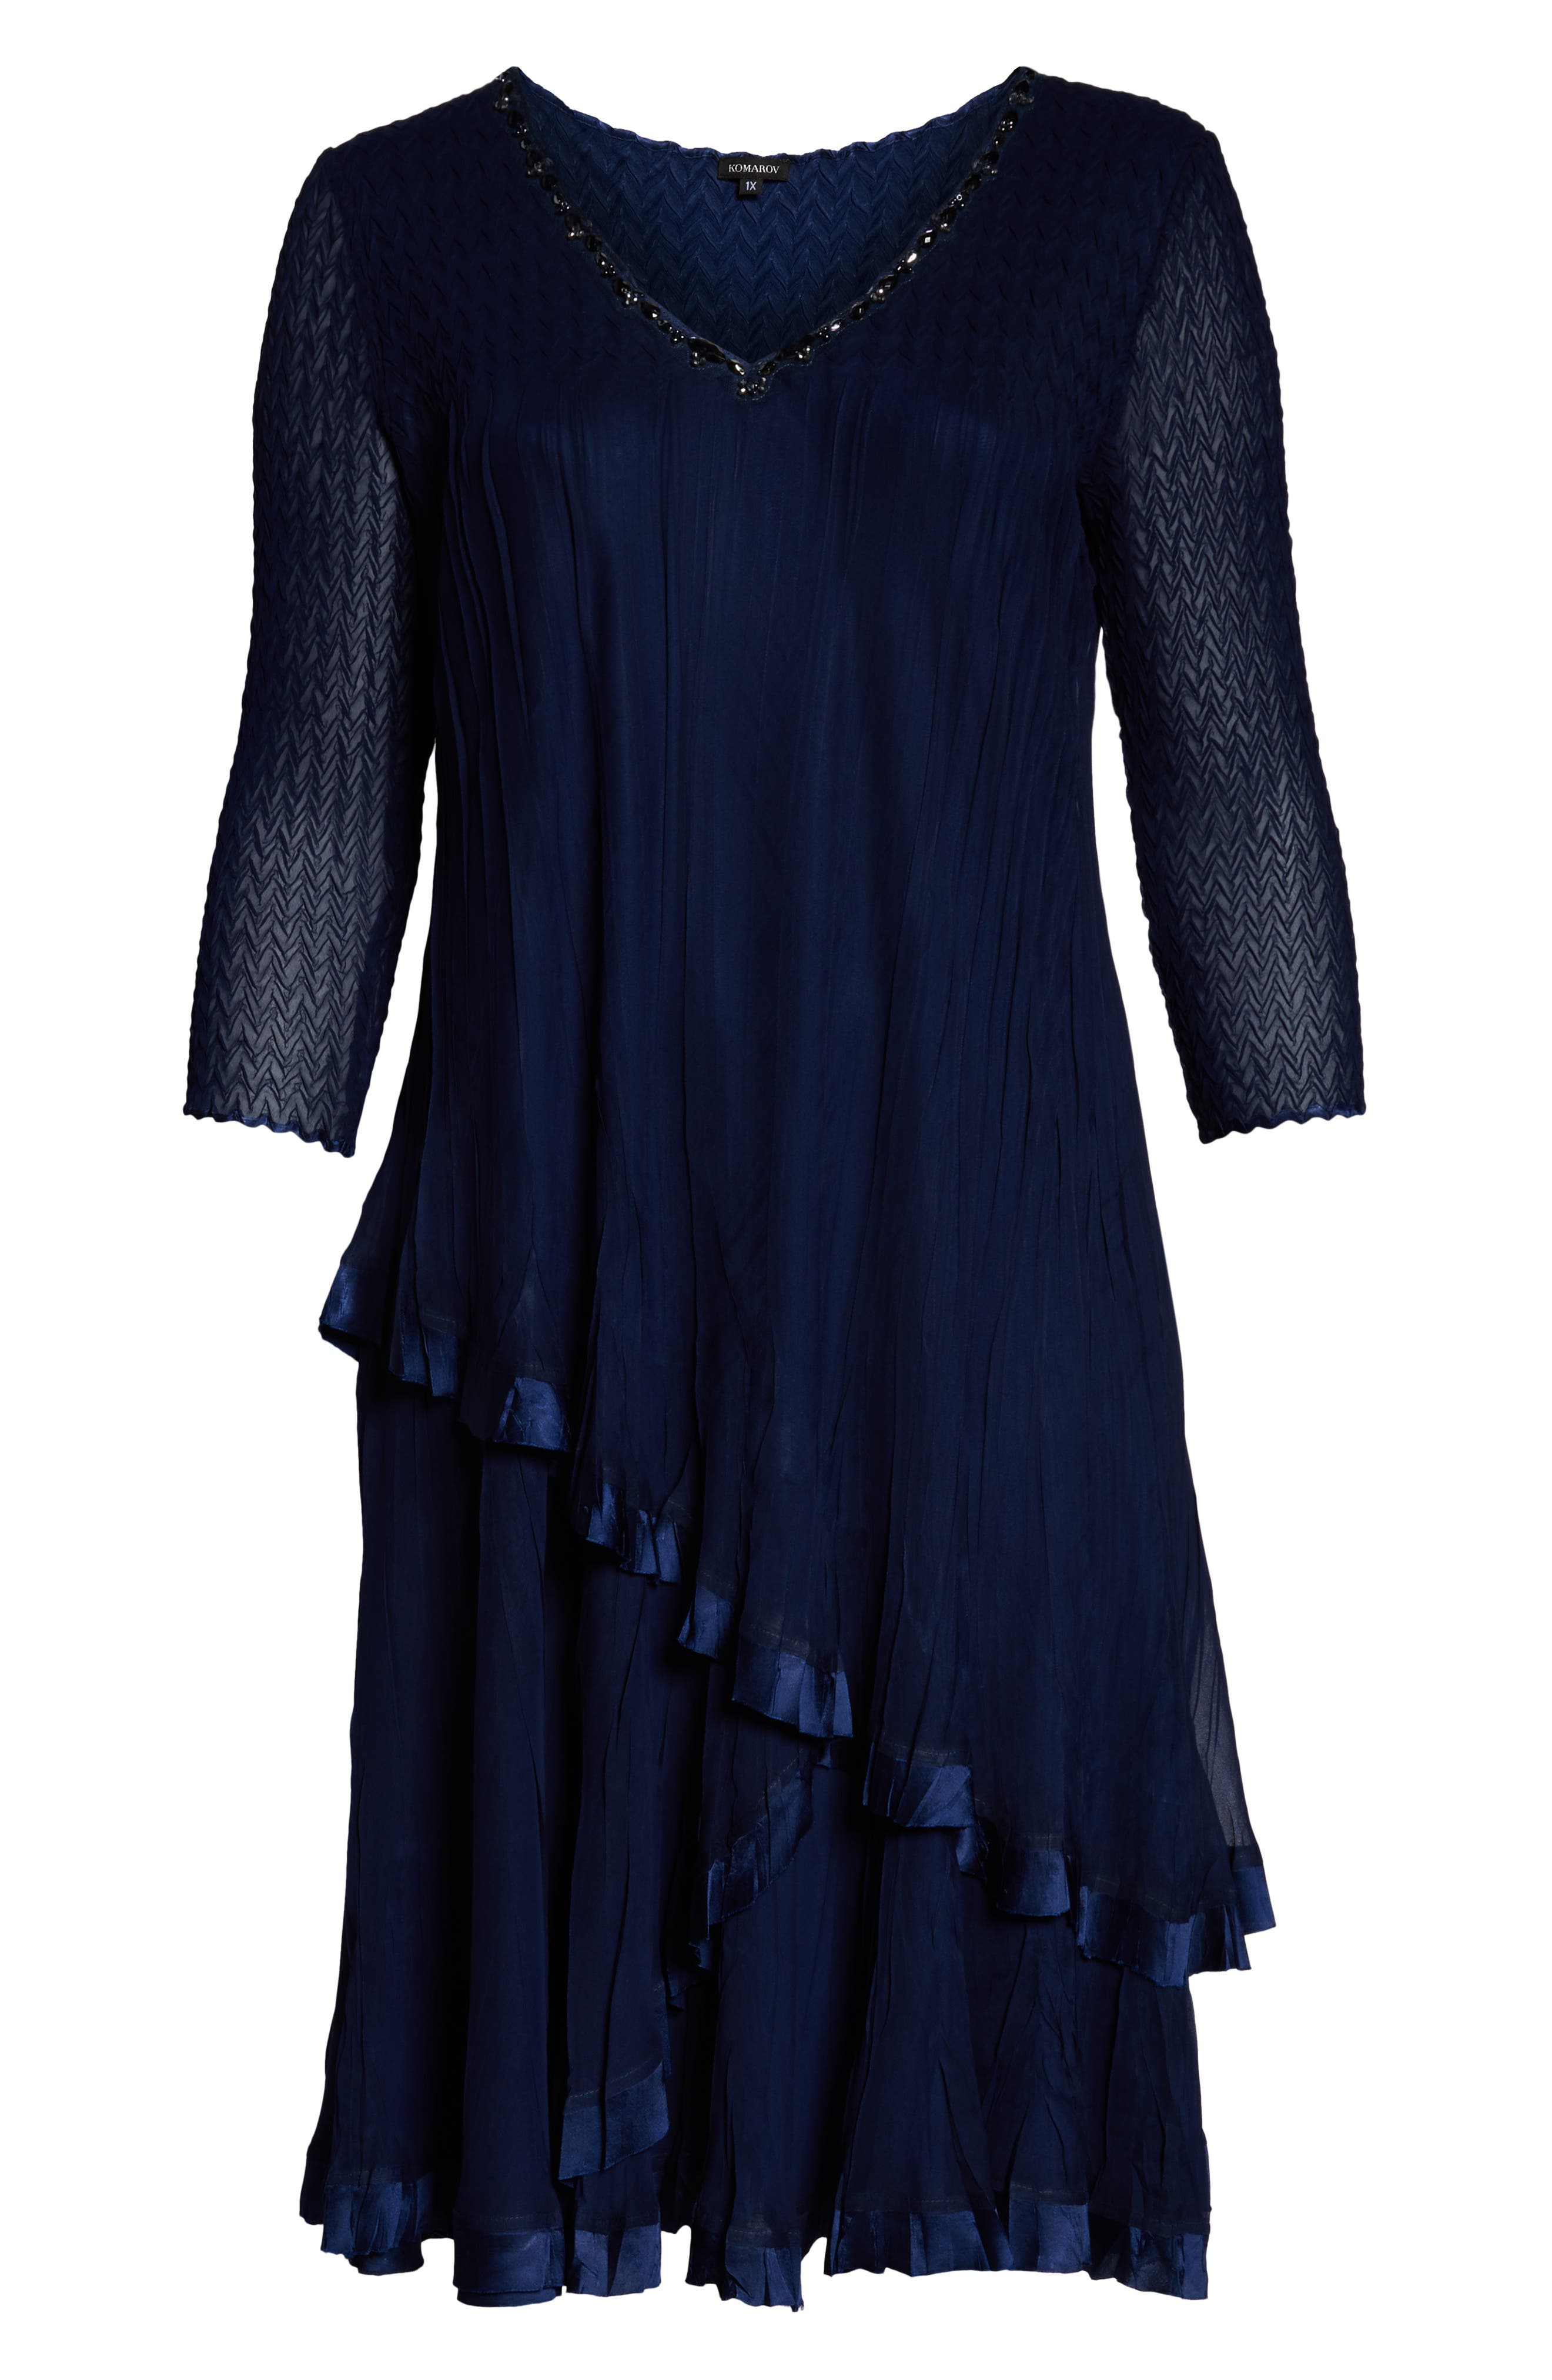 Beaded V-Neck Asymmetrical Tiered Cocktail Dress,                             Alternate thumbnail 7, color,                             MIDNIGHT NAVY